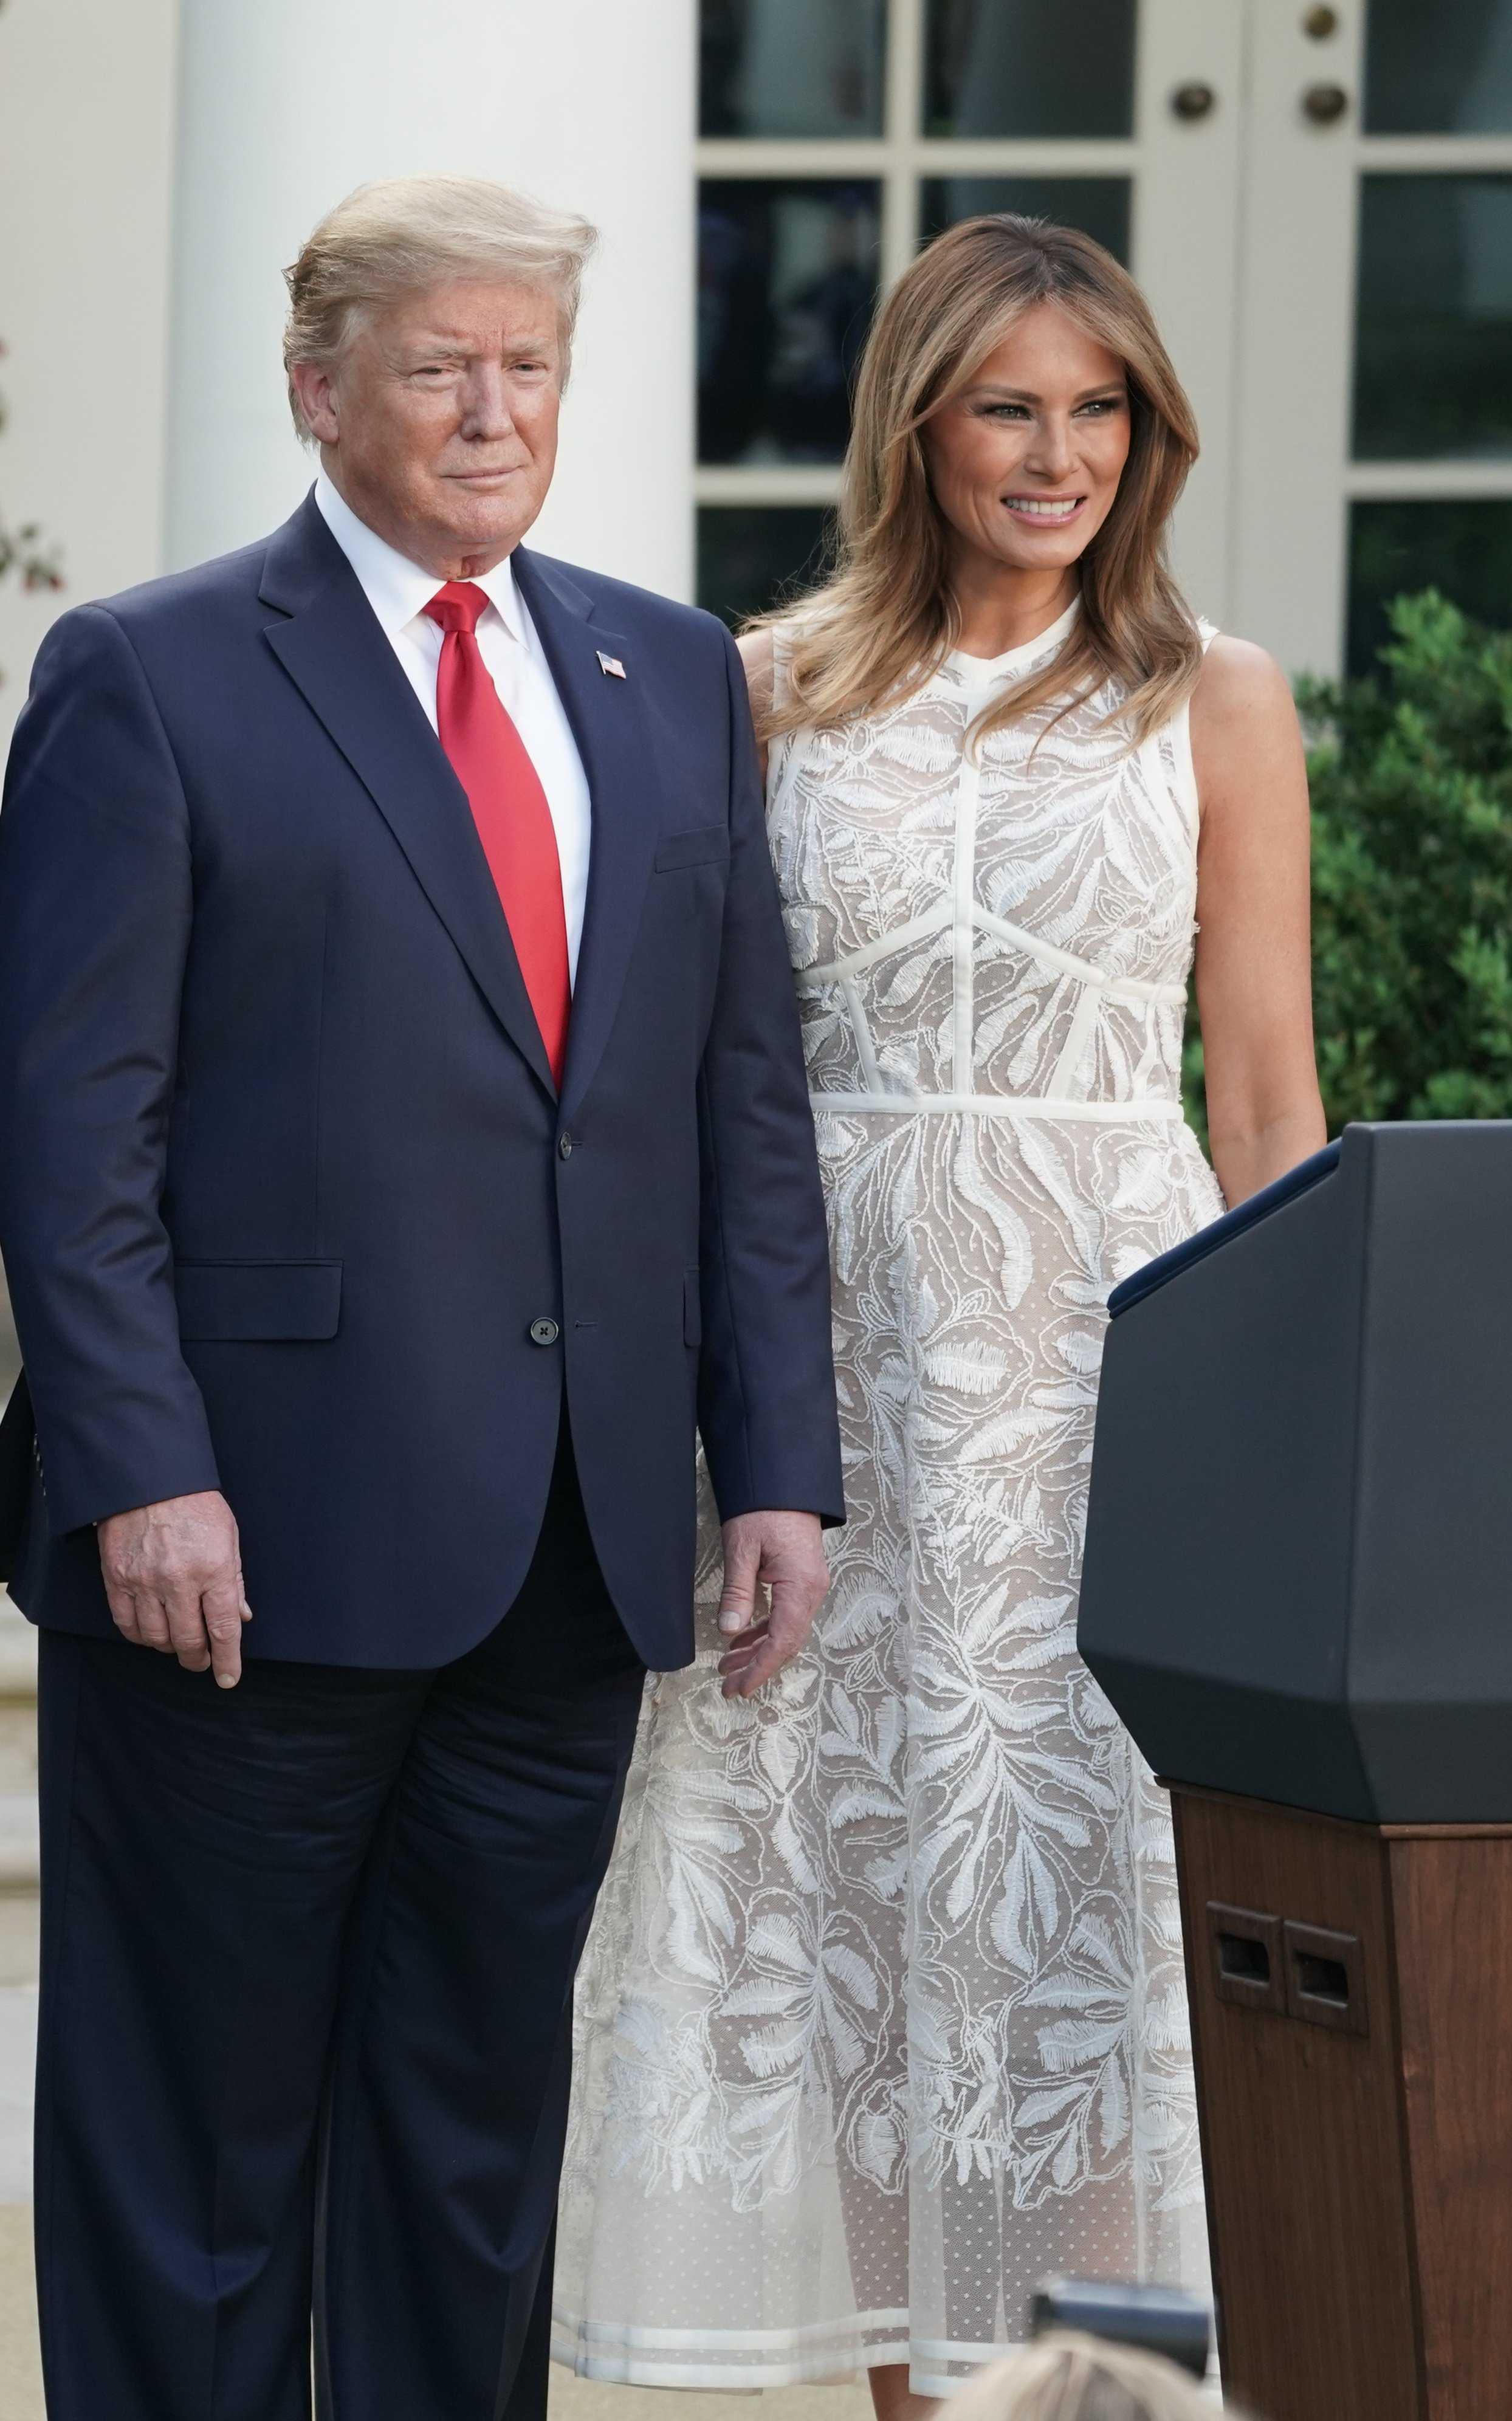 Donald Trump and Melania Trump in the Rose Garden at the White House | Photo: Getty Images